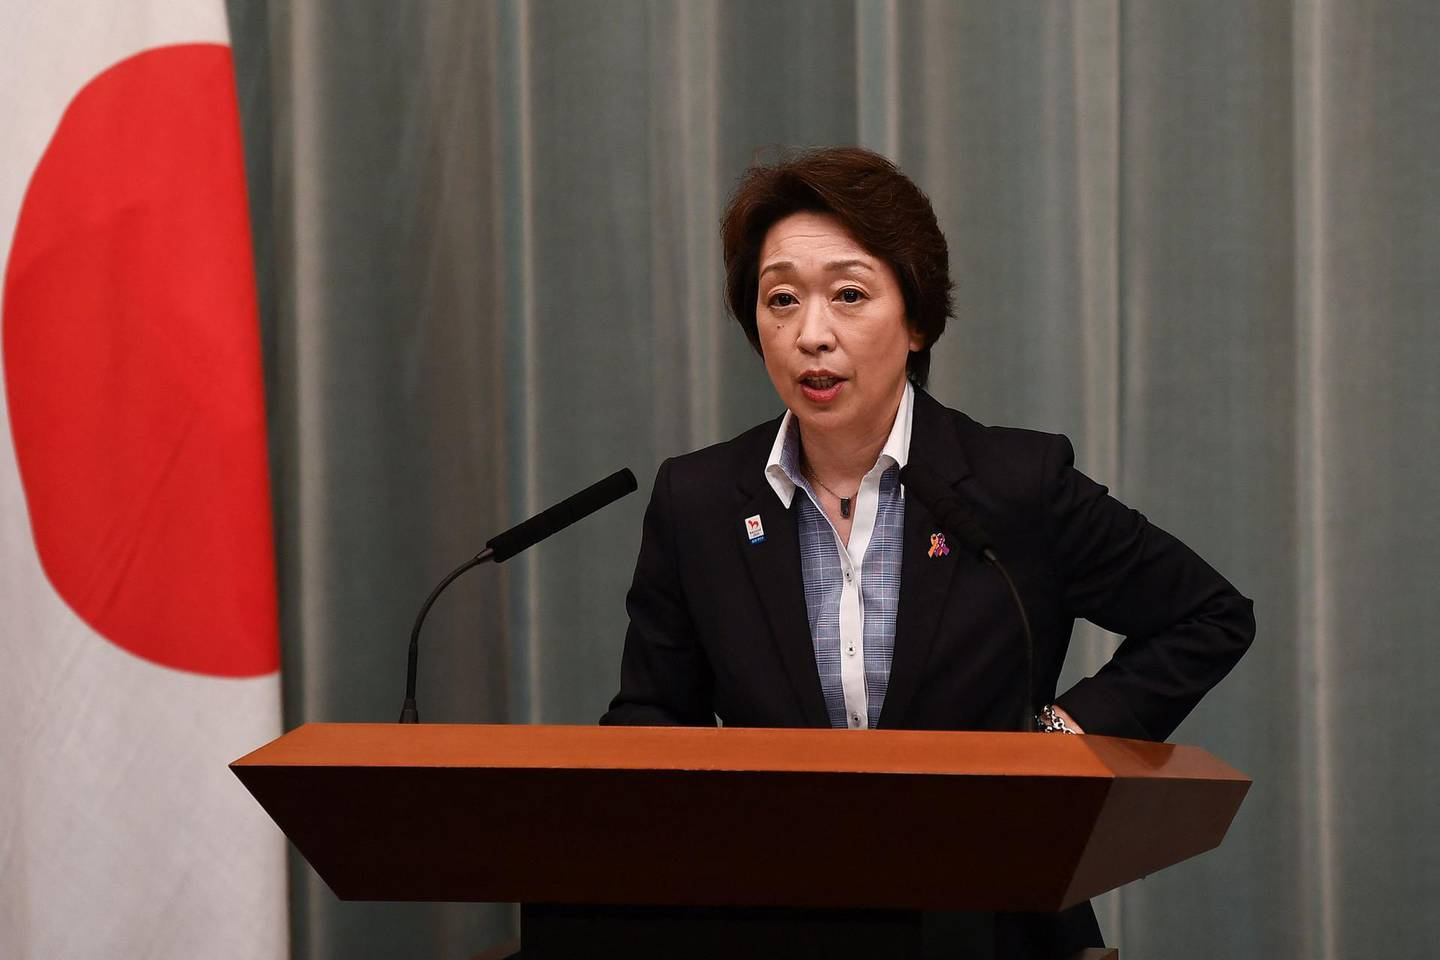 (FILES) In this file photo taken on September 17, 2020 Japan's Minister for the Tokyo Olympic and Paralympic Games Seiko Hashimoto delivers a speech during a press conference at the Prime Minister's office in Tokyo. Japan's Olympic Minister Seiko Hashimoto has been chosen as the top candidate to replace Tokyo 2020 chief Yoshiro Mori after he resigned over a sexism row, reports said on February 17, 2021. / AFP / Charly TRIBALLEAU